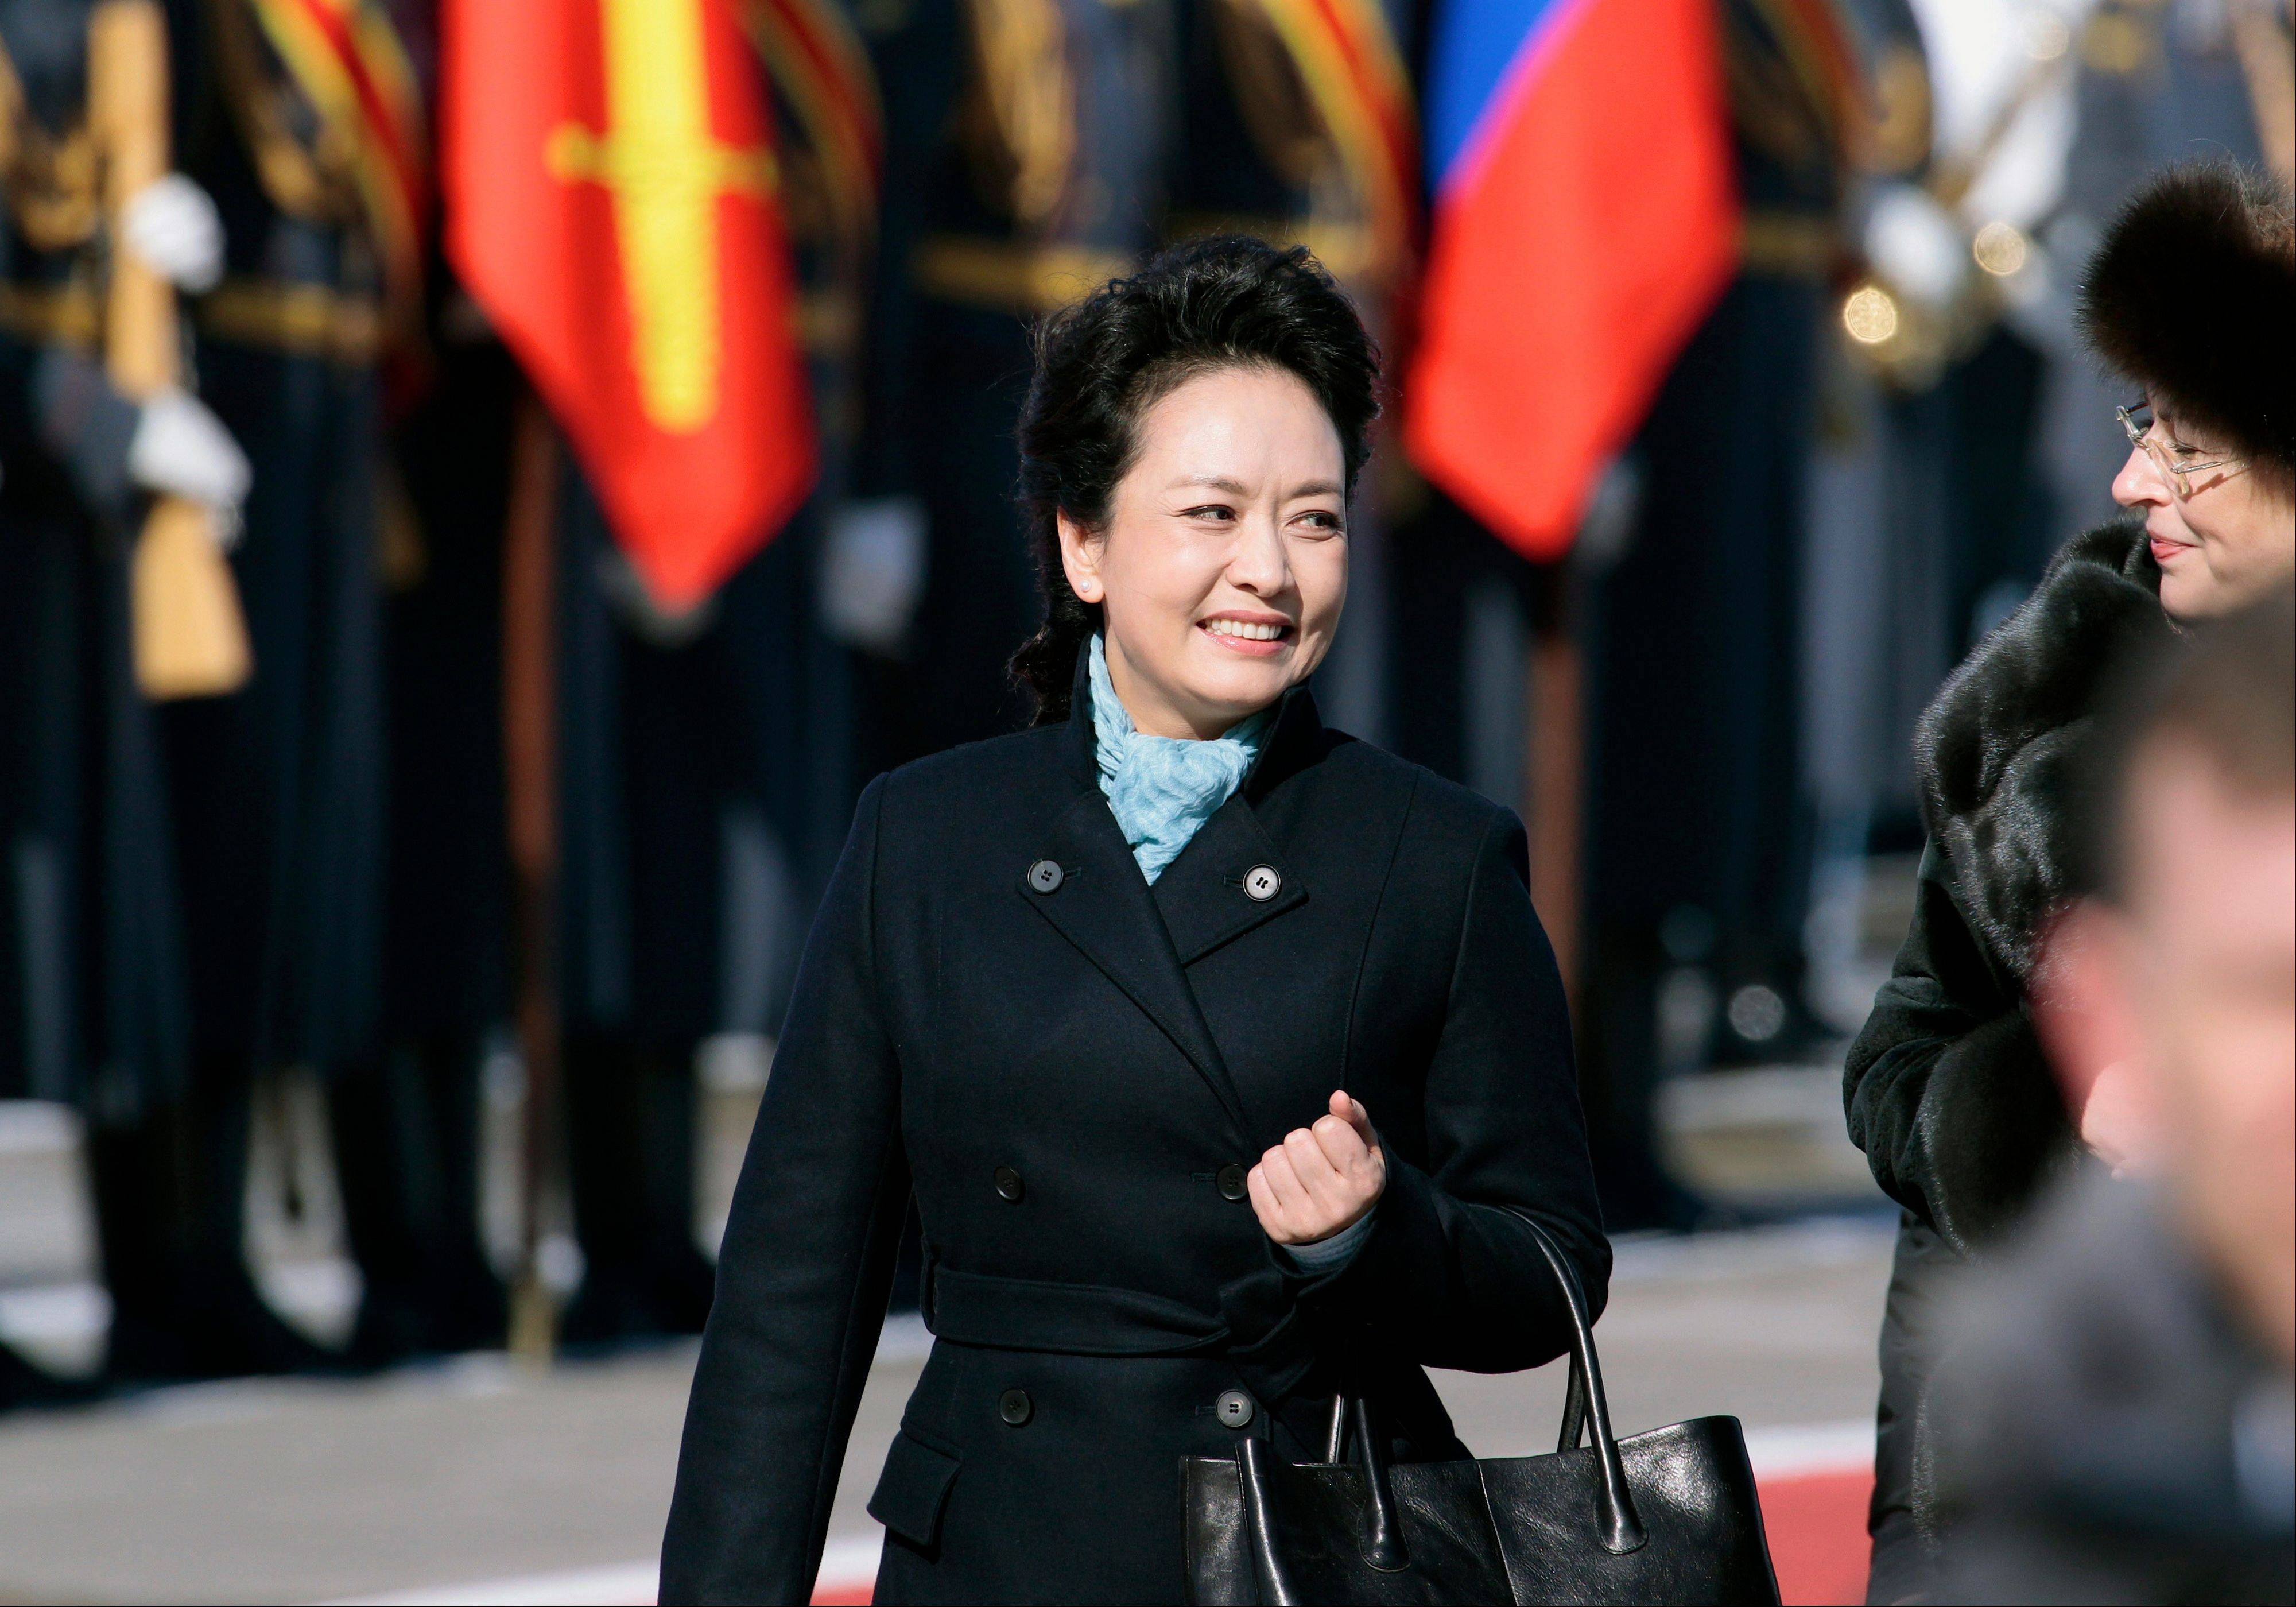 In this March 22, 2013 file photo, Chinese President Xi Jinping's wife Peng Liyuan smiles after arriving at the government airport Vnukovo II, outside Moscow, Russia. New Chinese first lady Peng is emerging as Chinese diplomacy's latest star. A well-known performer on state television, the glamorous Peng was featured prominently on Sunday's state media coverage of President Xi Jinping's activities in Russia. The visit is Xi's first since assuming the presidency earlier this month.